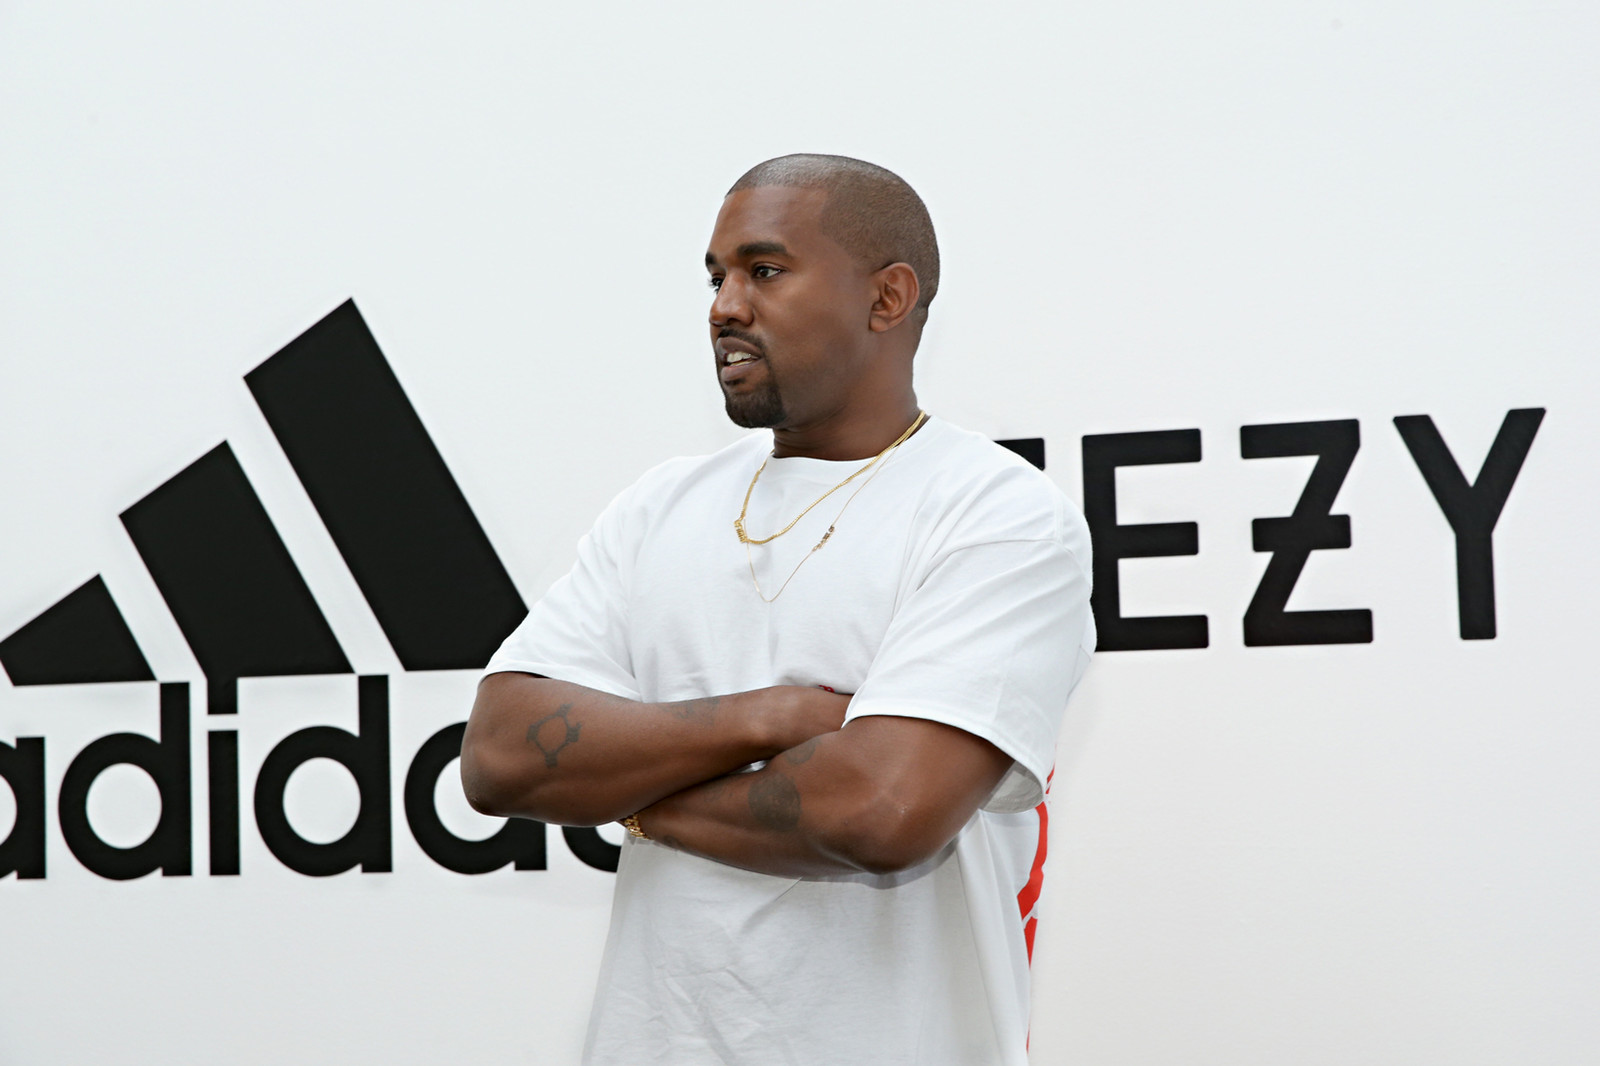 adidas + Kanye West, Yeezy, staff recruitment, career openings